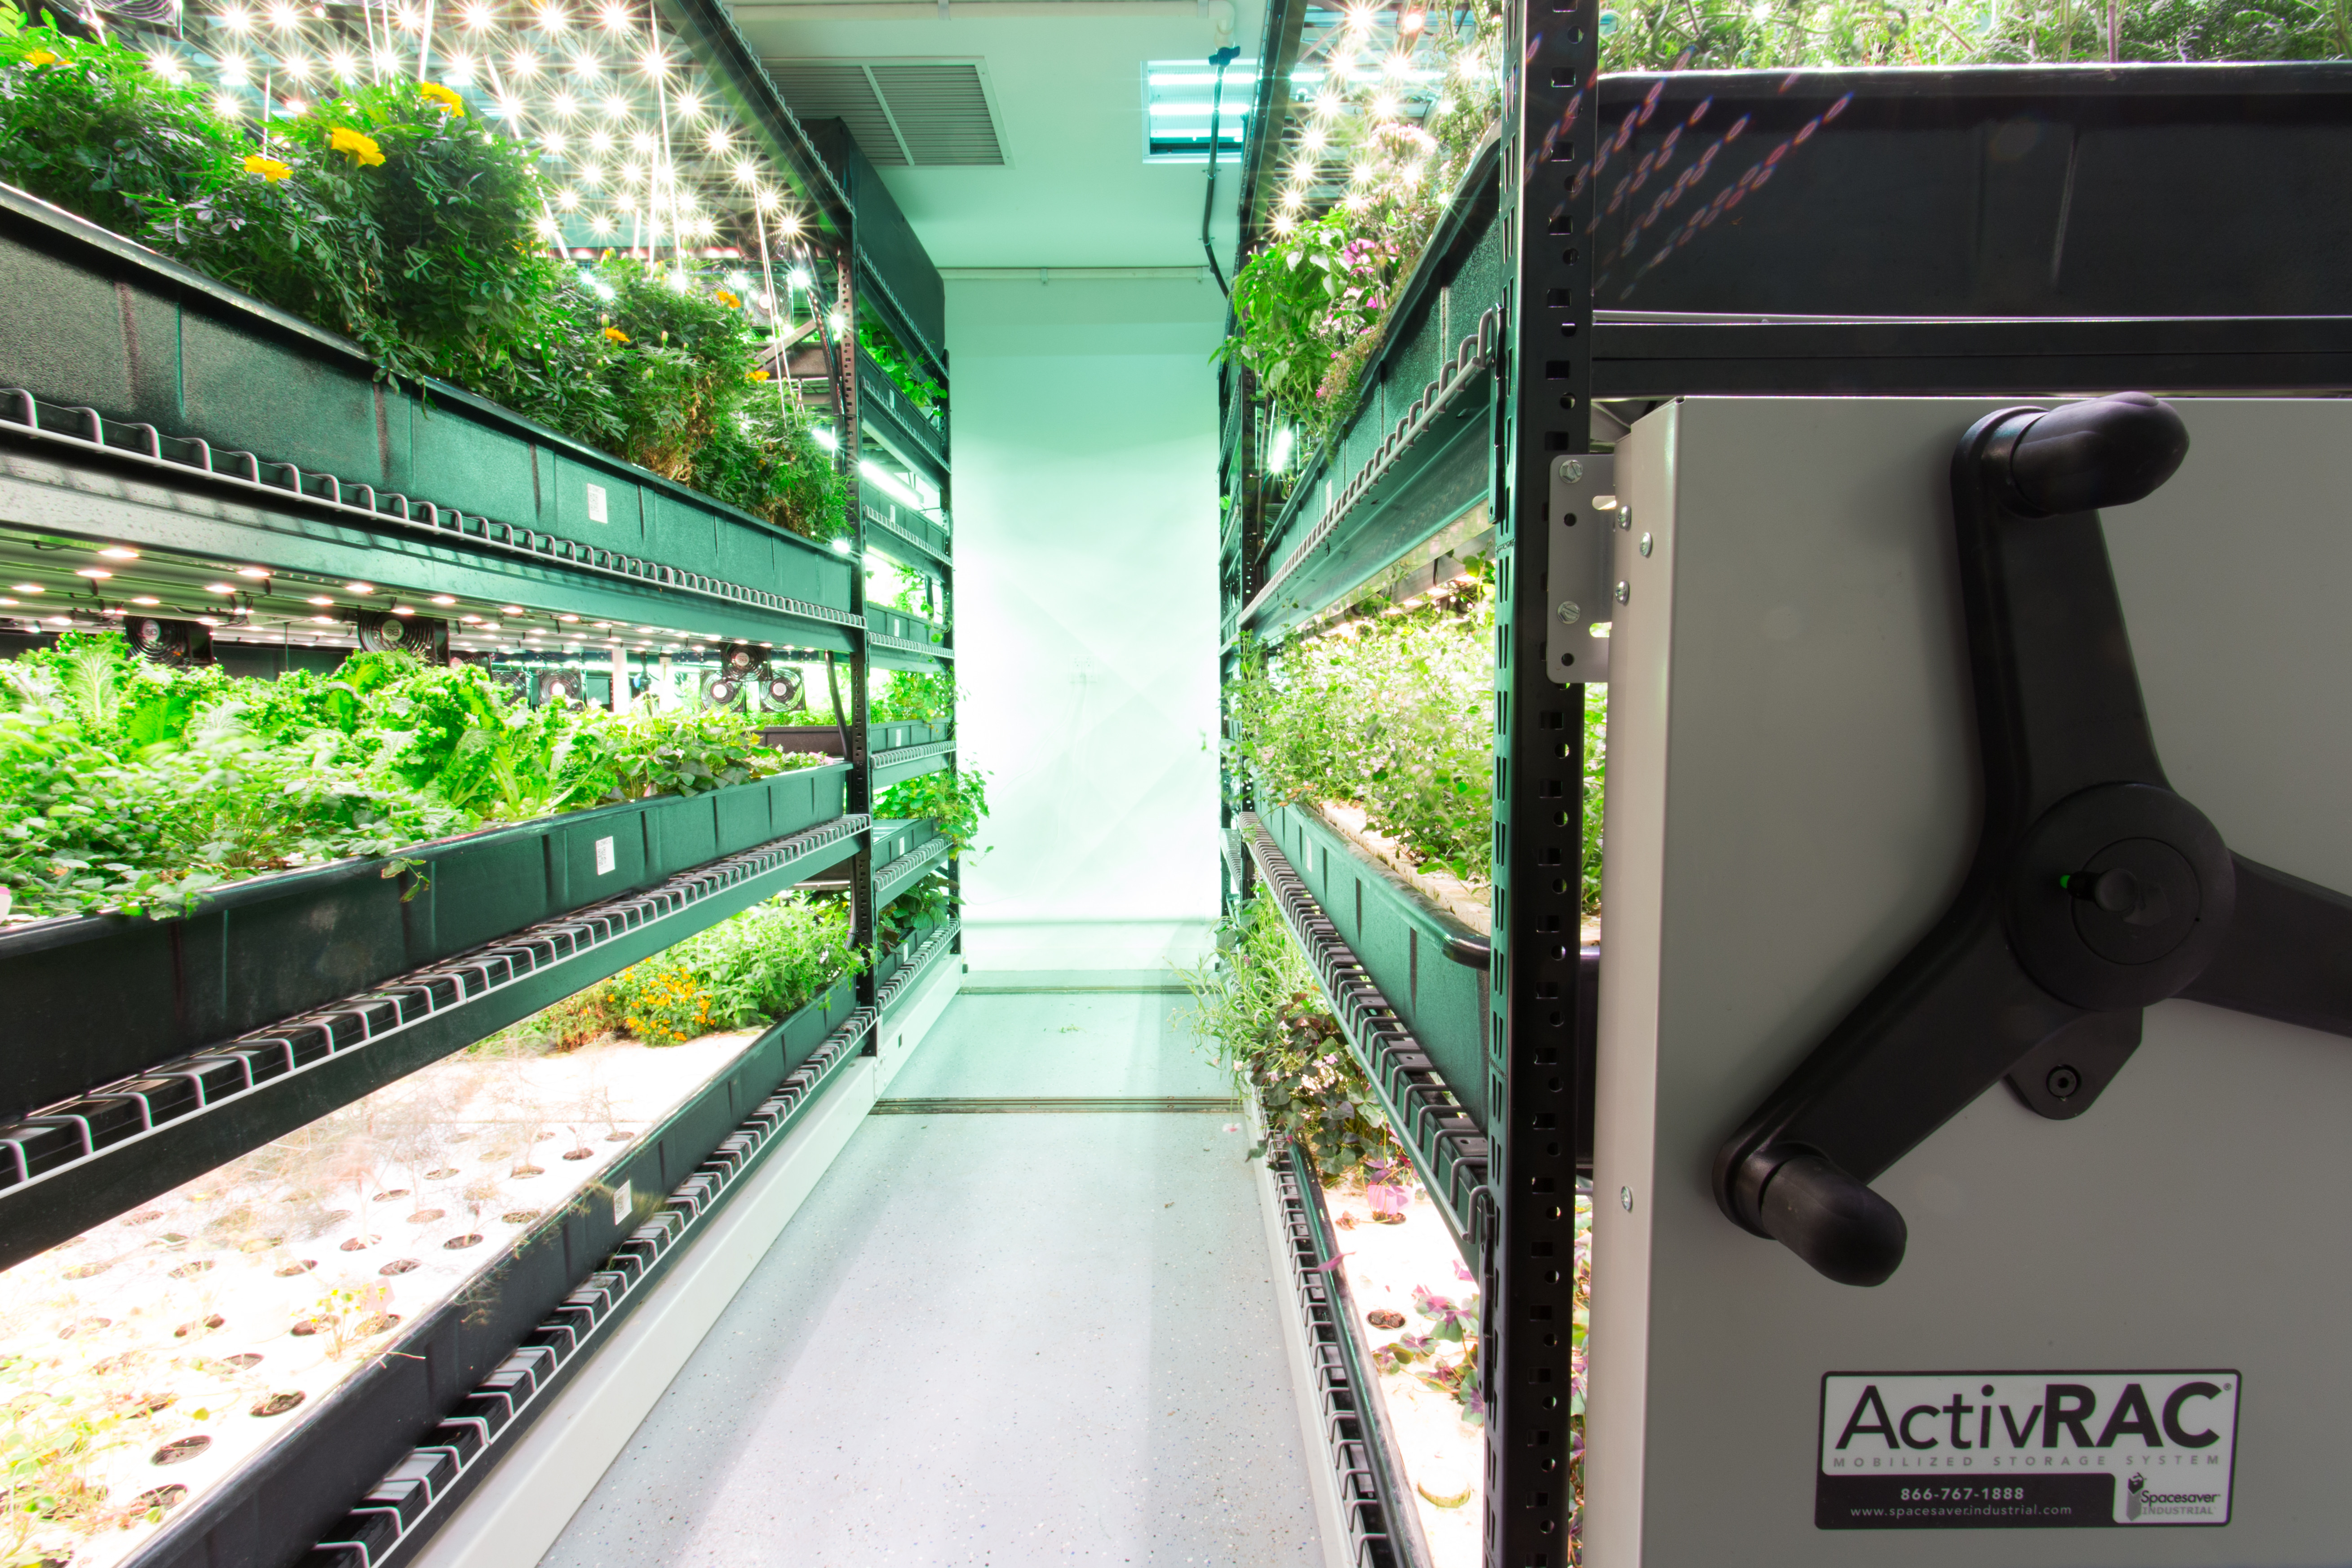 Mobile System Growing Hydroponic Vegetables